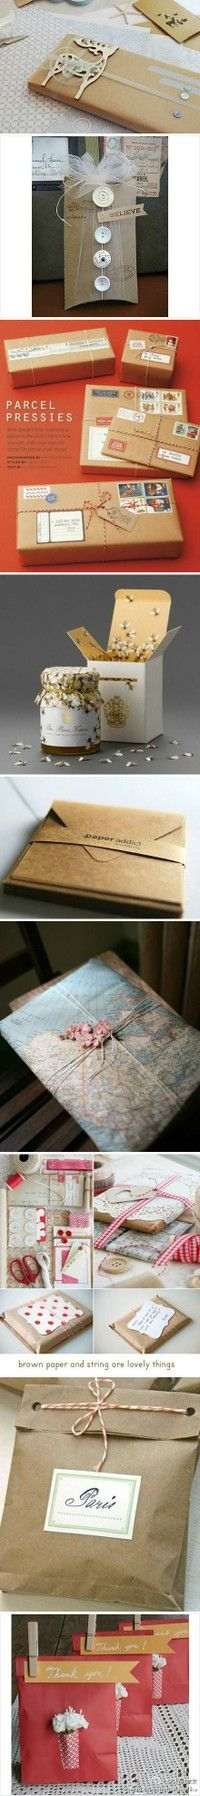 Cool ways to pack things as gifts